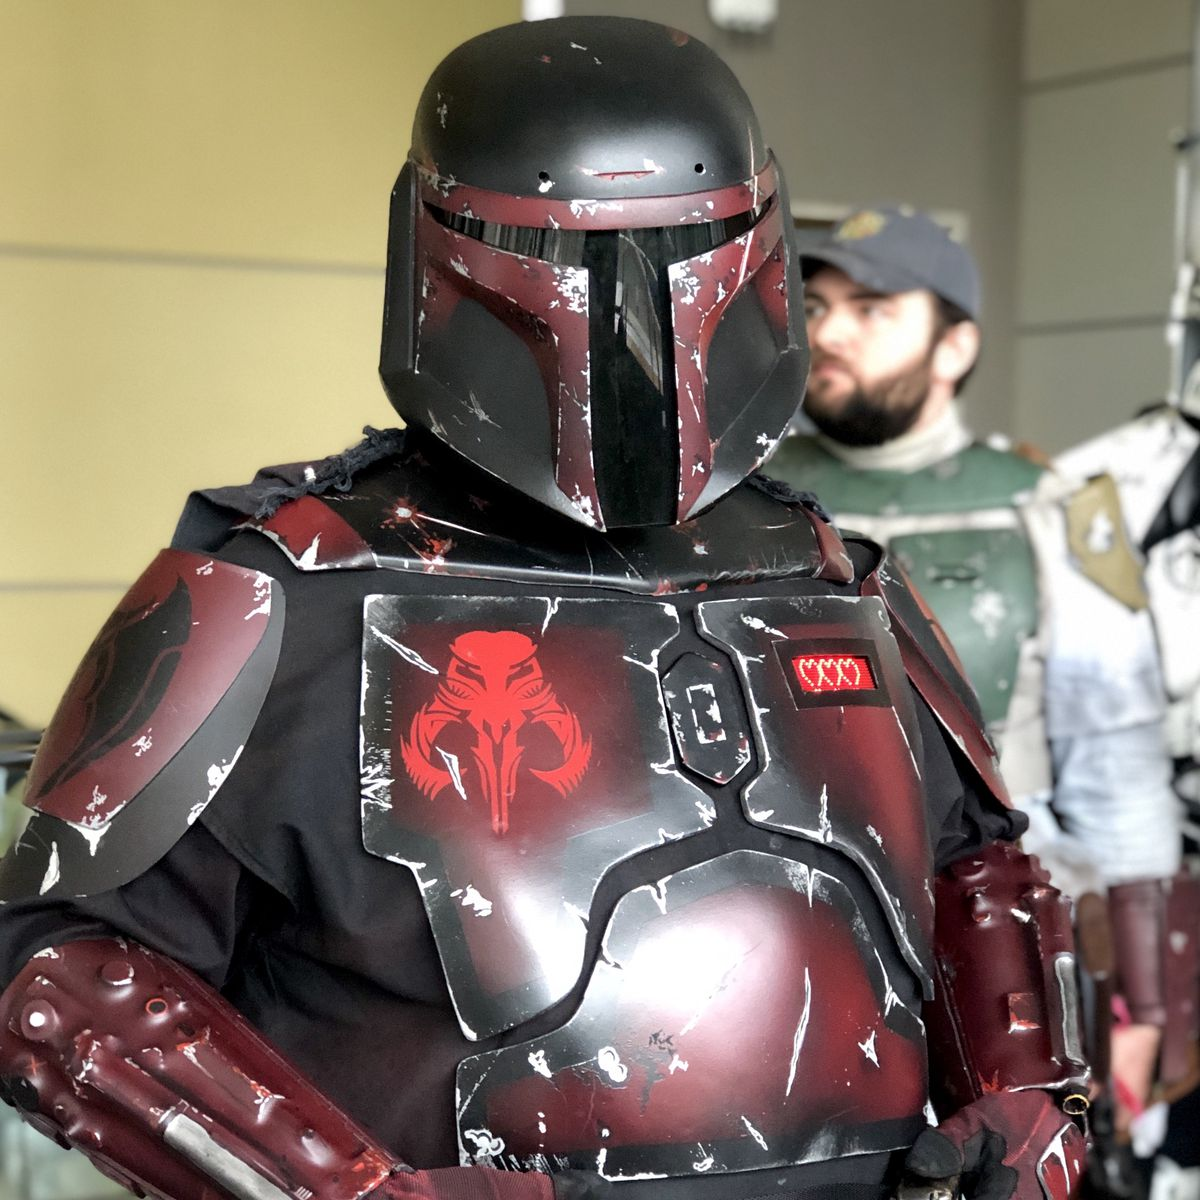 A husky red and black mandalorian armor cosplayer